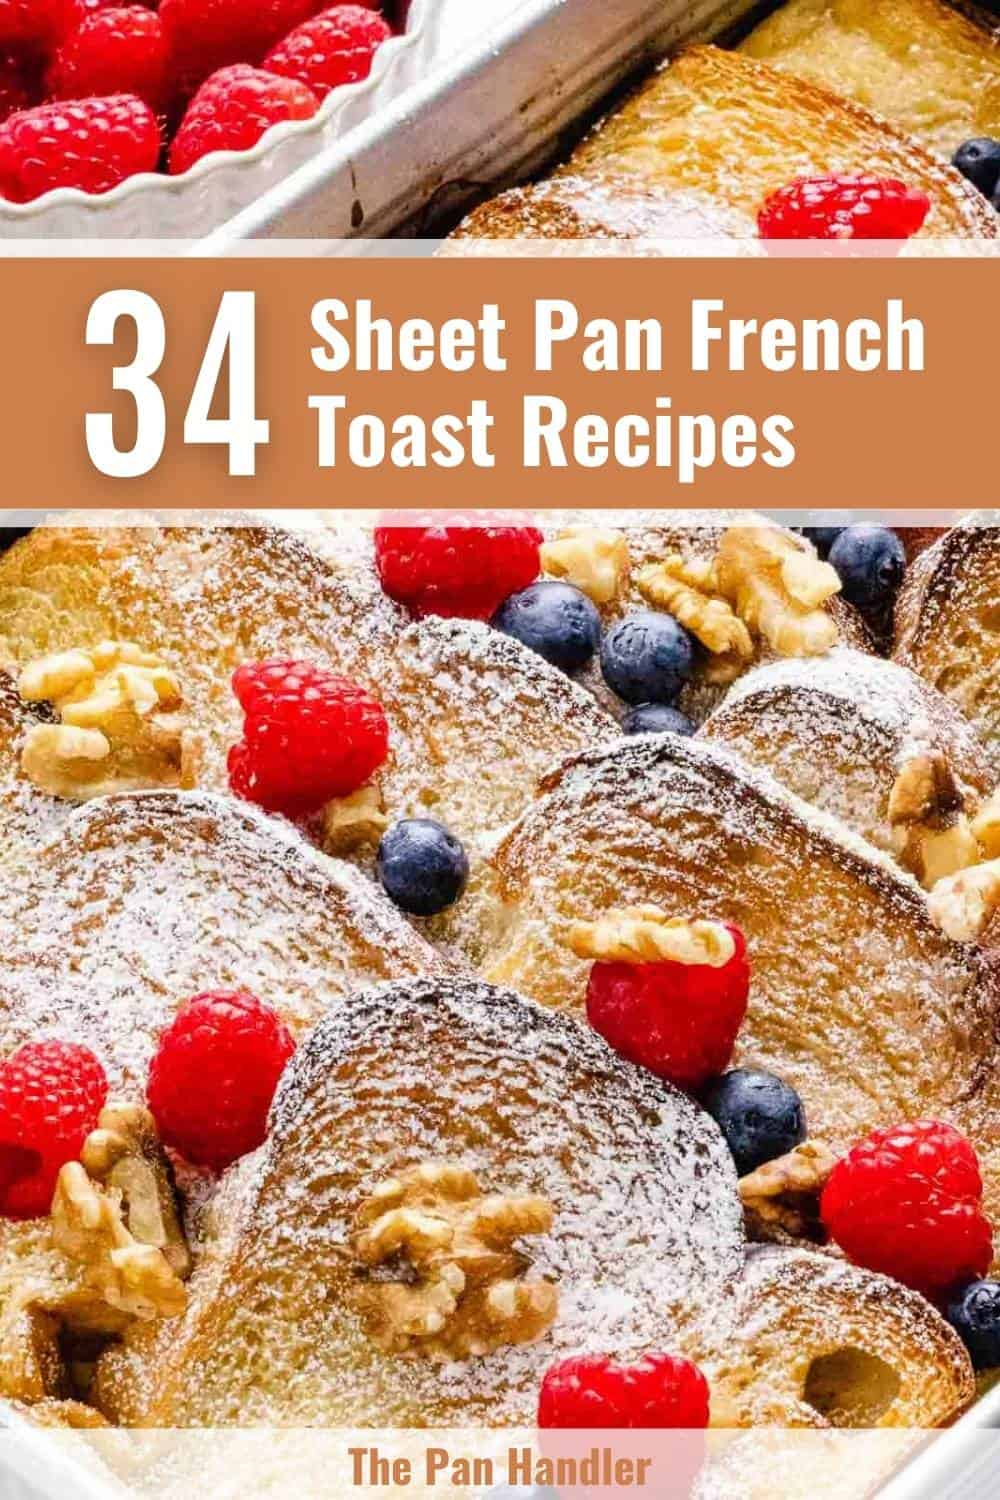 heet Pan French Toast